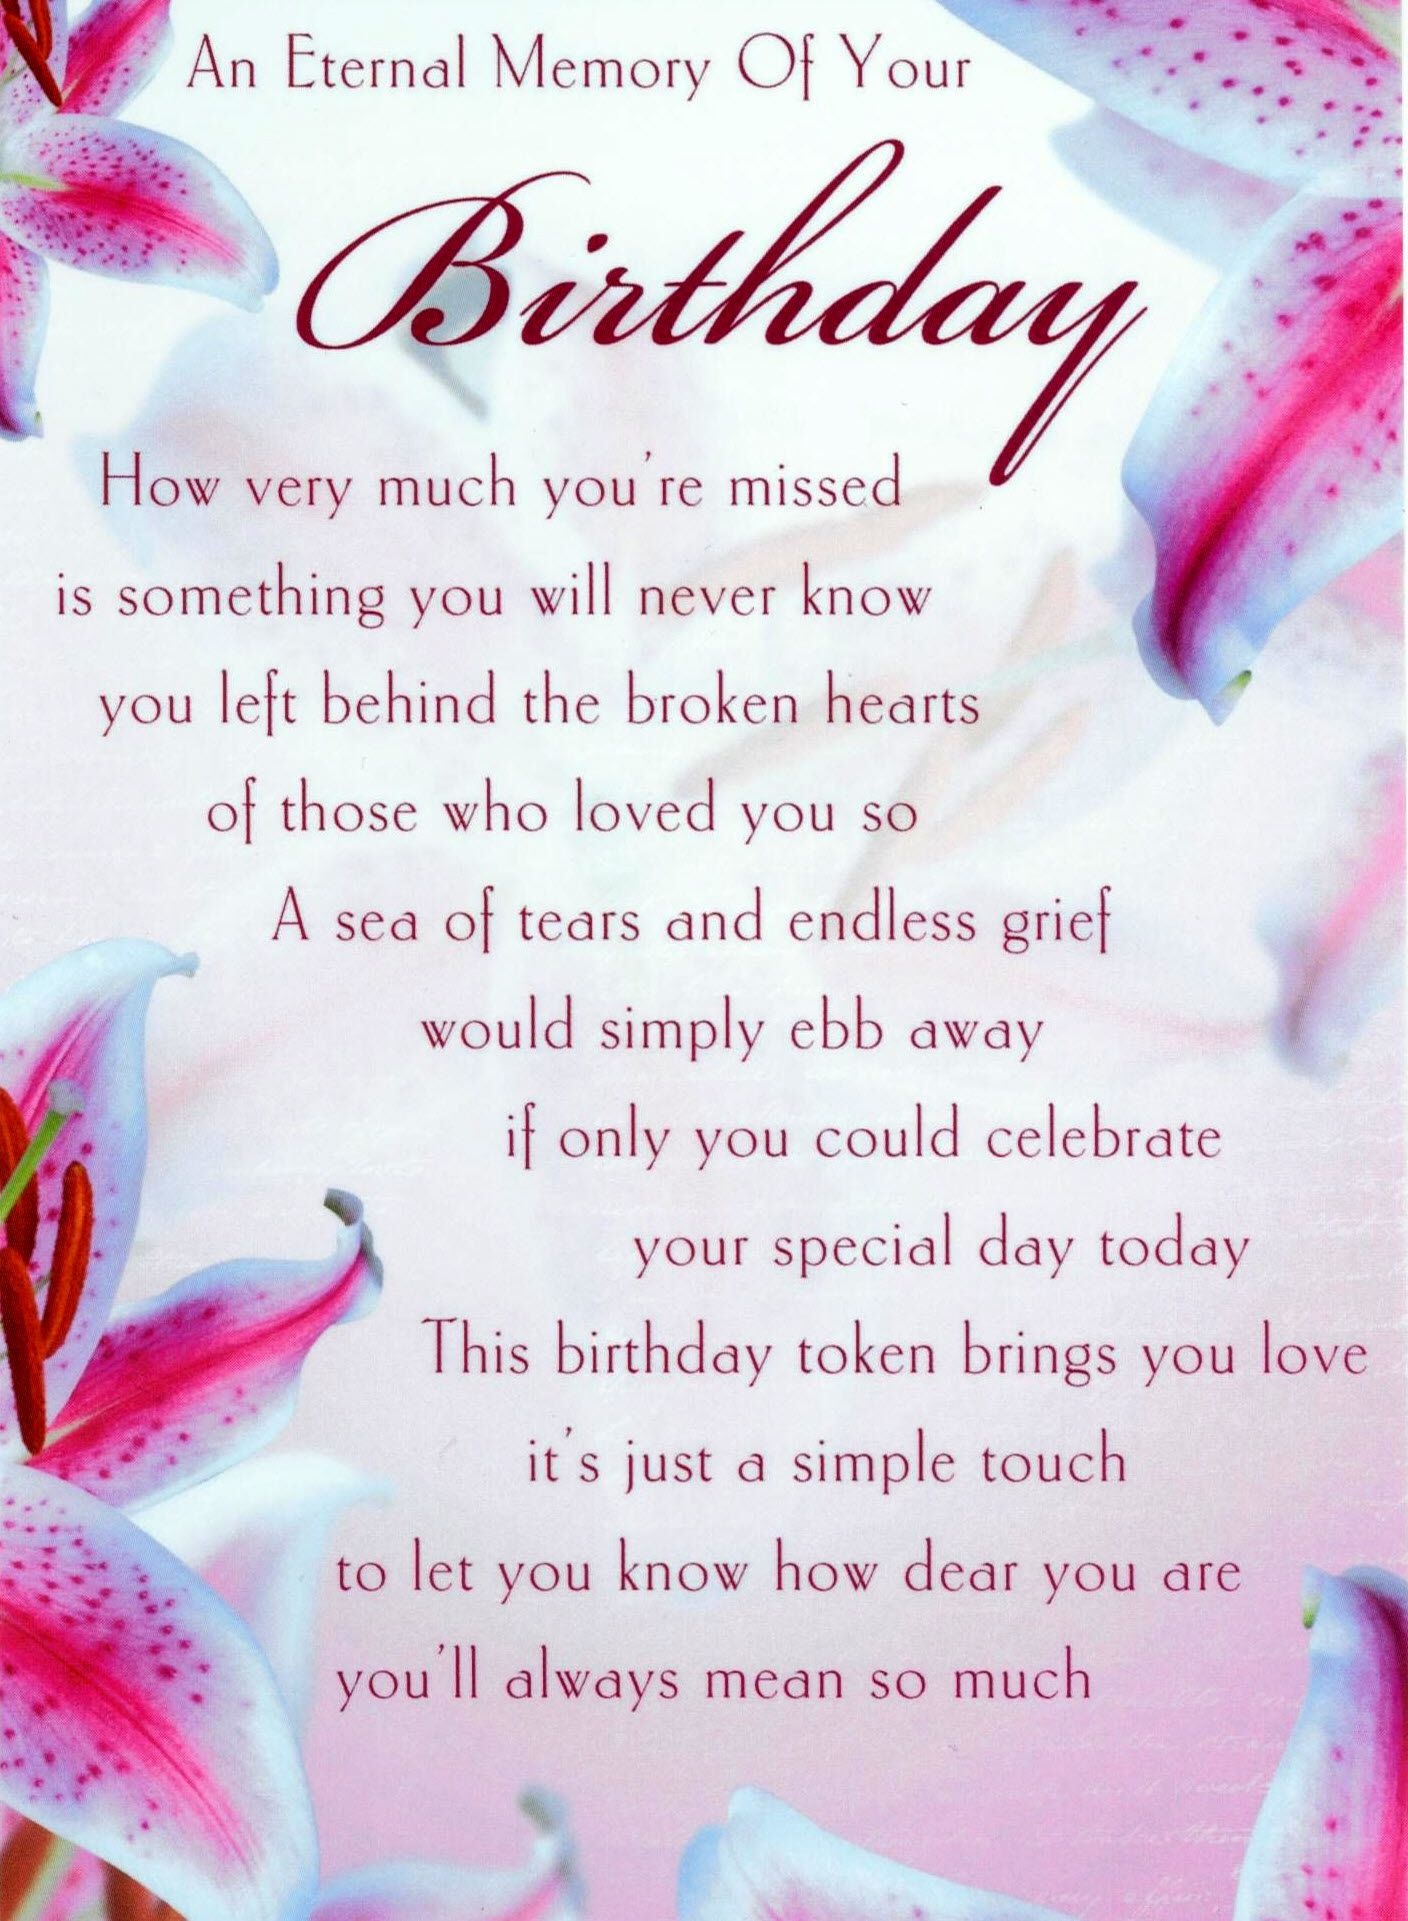 Happy Birthday Poem For A Mom That Passed Away Happy Birthday Son In Heaven Quote